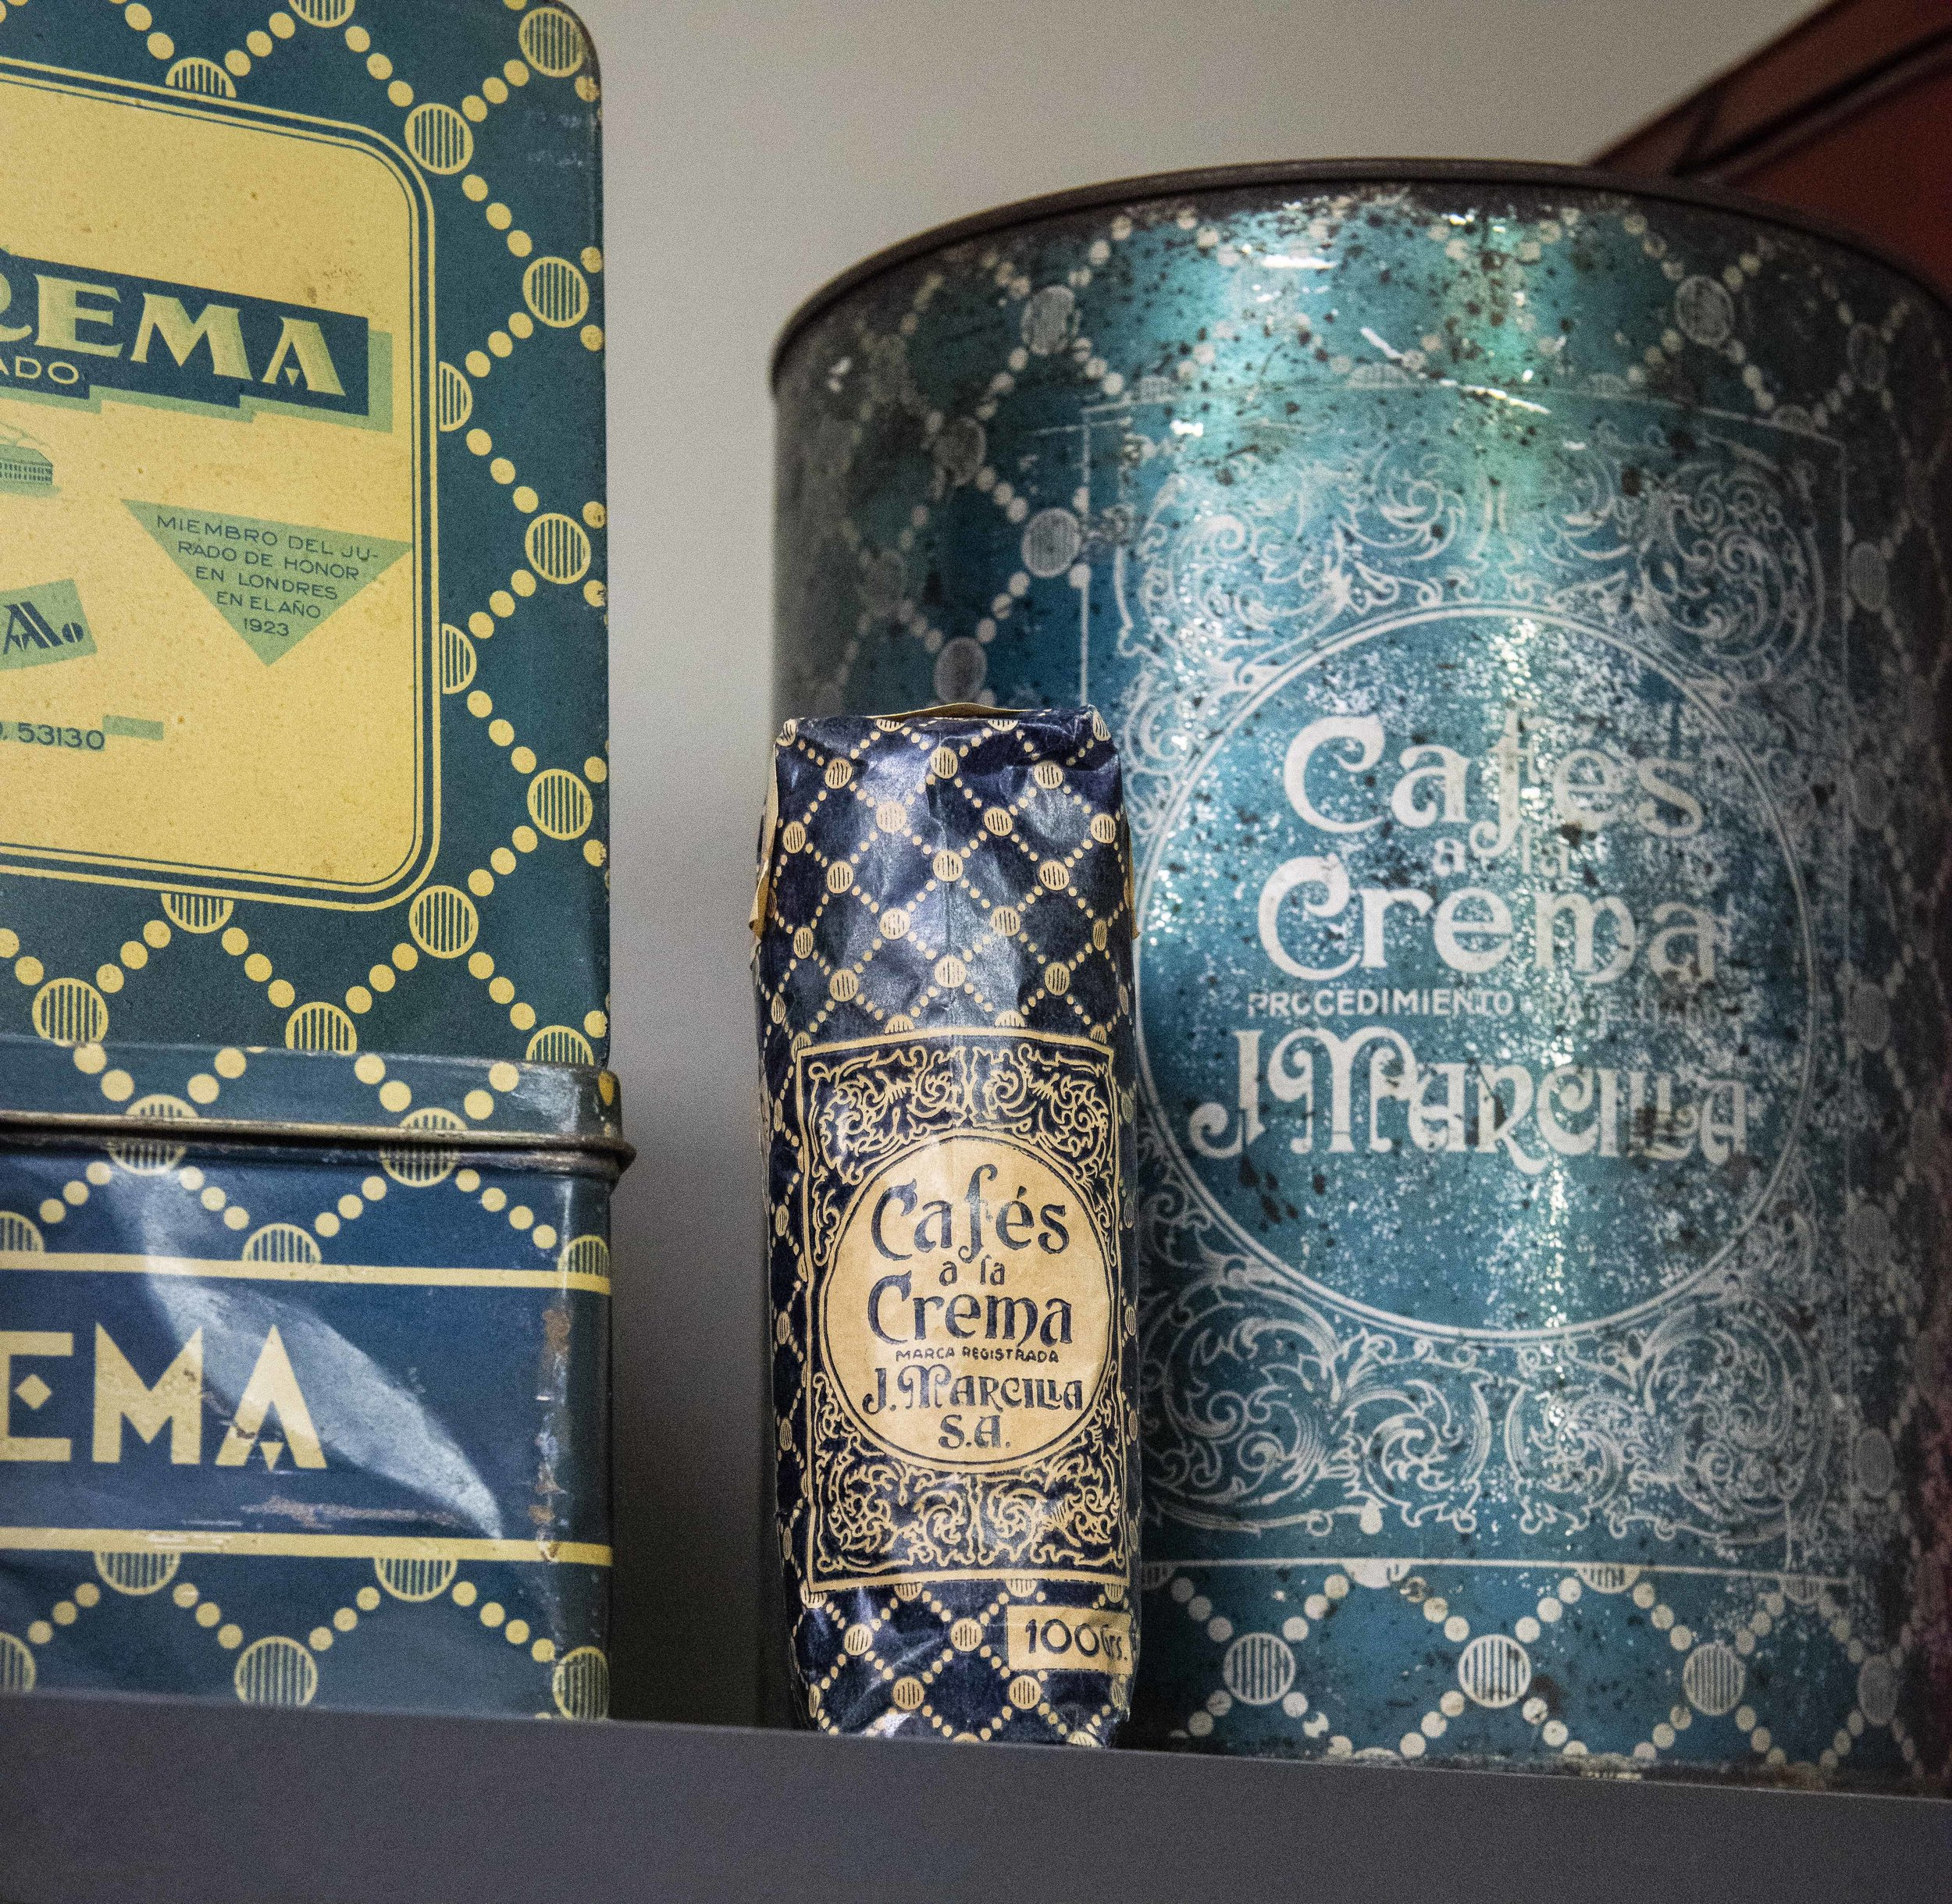 Vintage items from Marcilla coffee. Photo © Barcelona Food Experience.